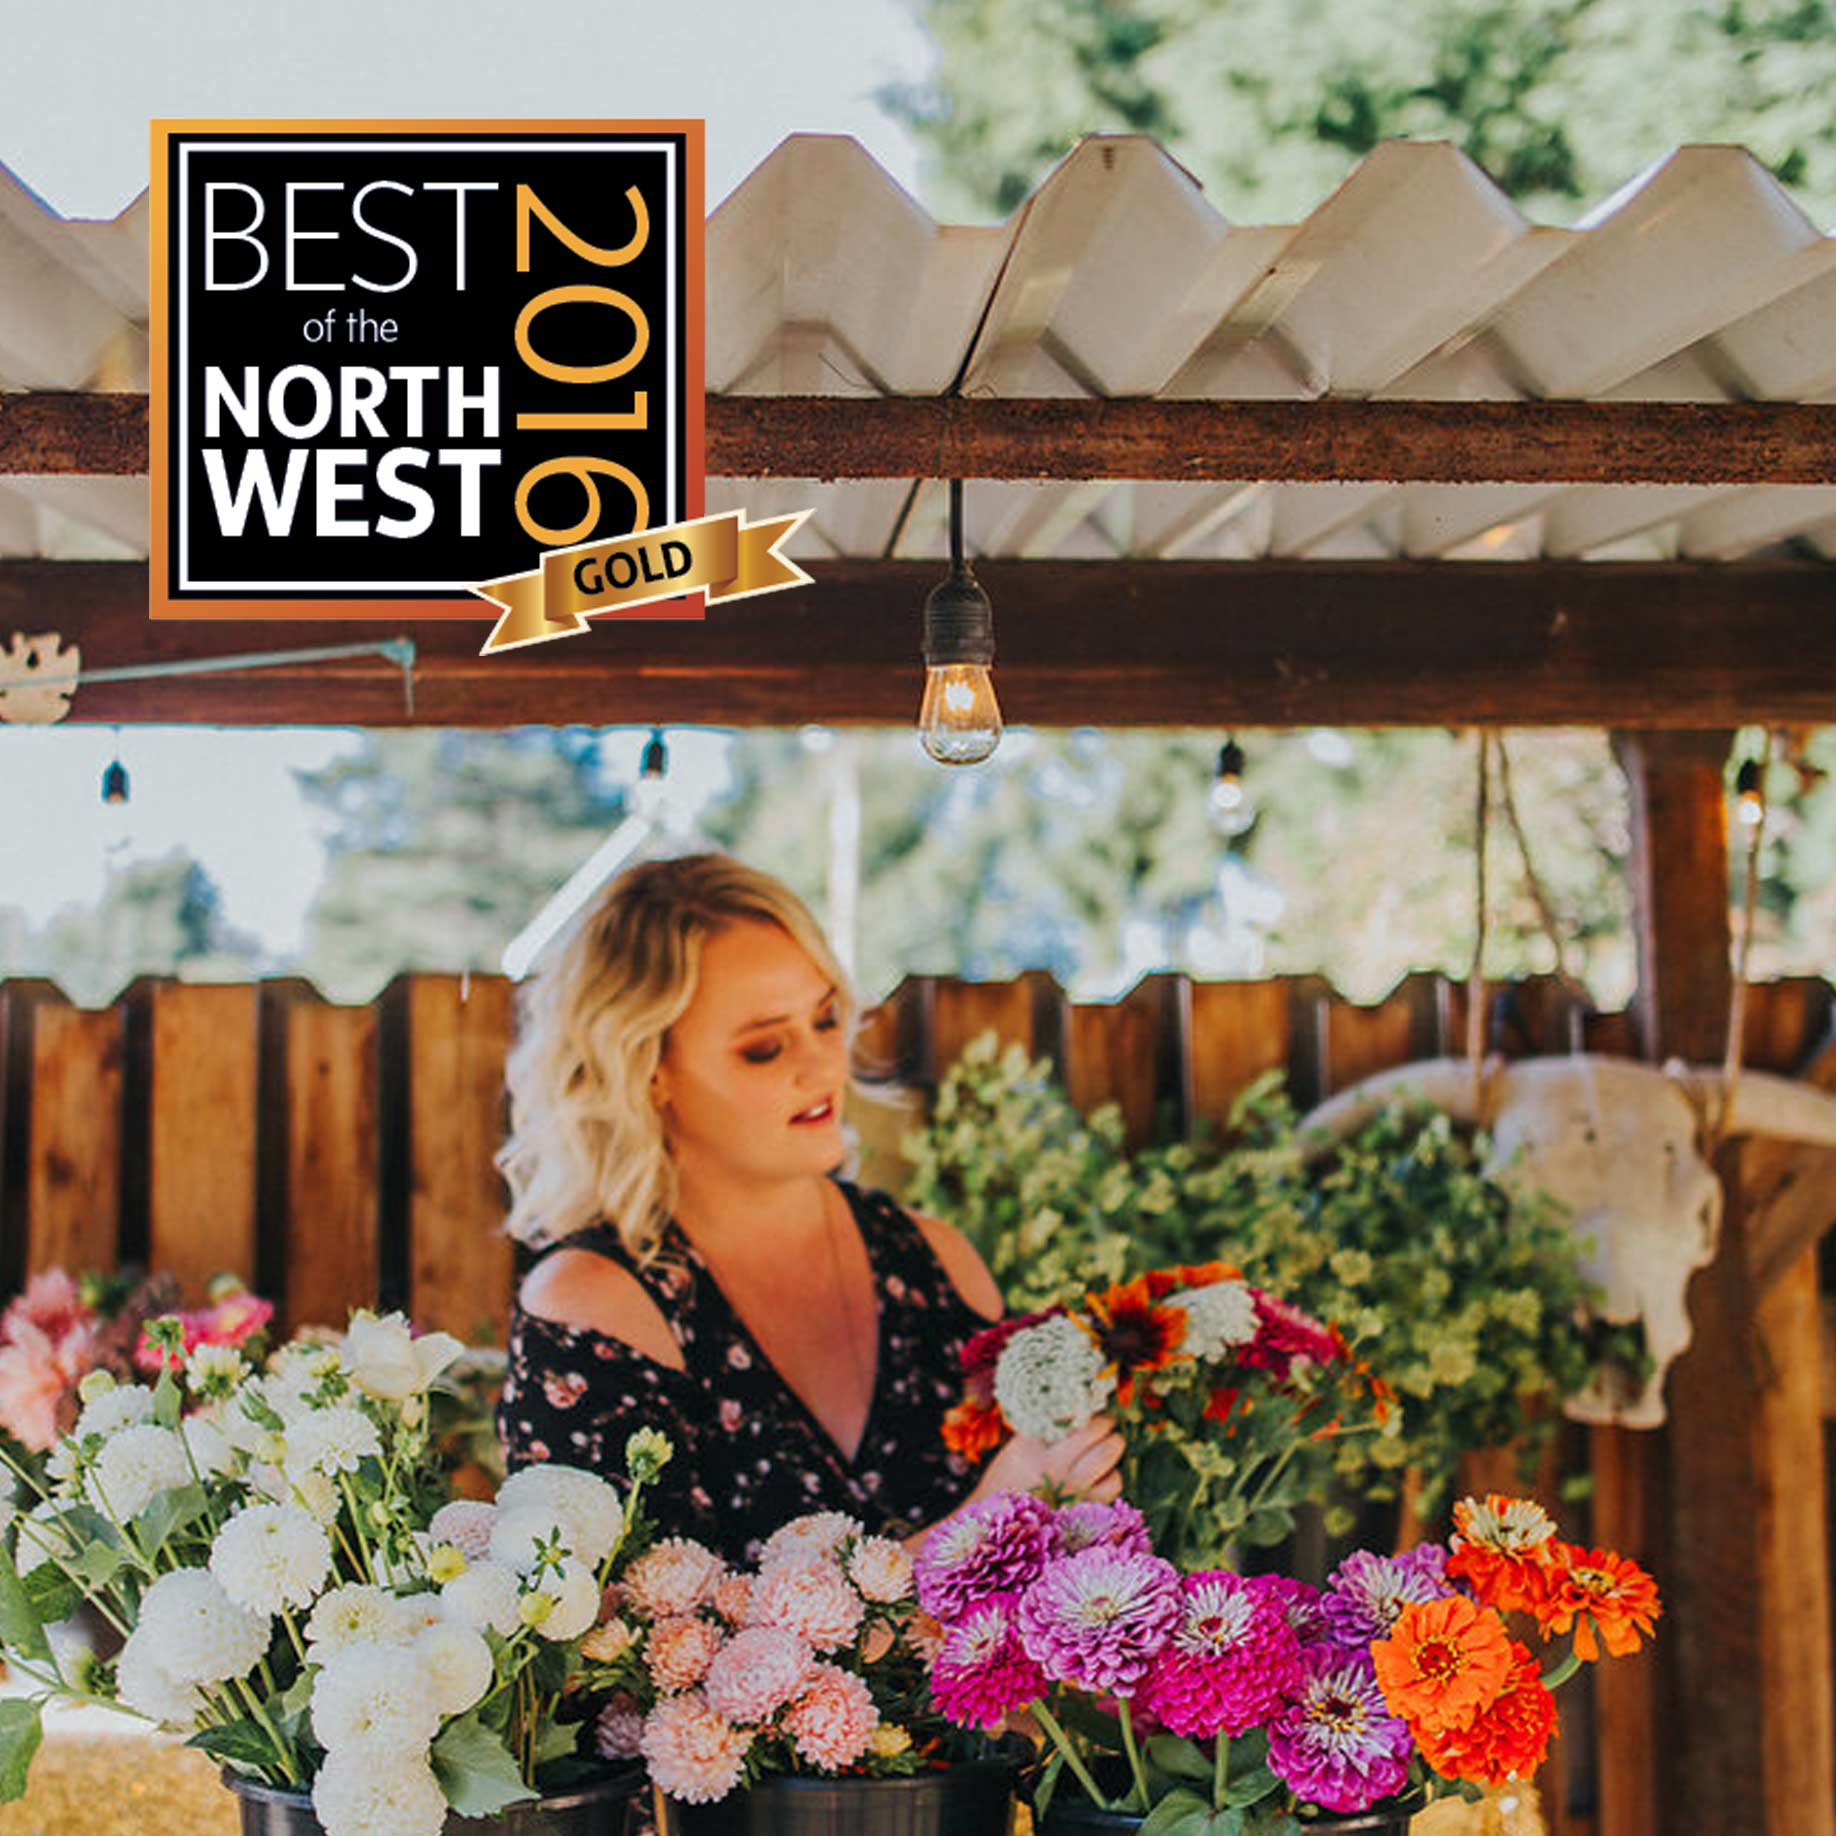 Won 'Best Florist' in Bellingham Alive, 3 years in a row (2016-2018).